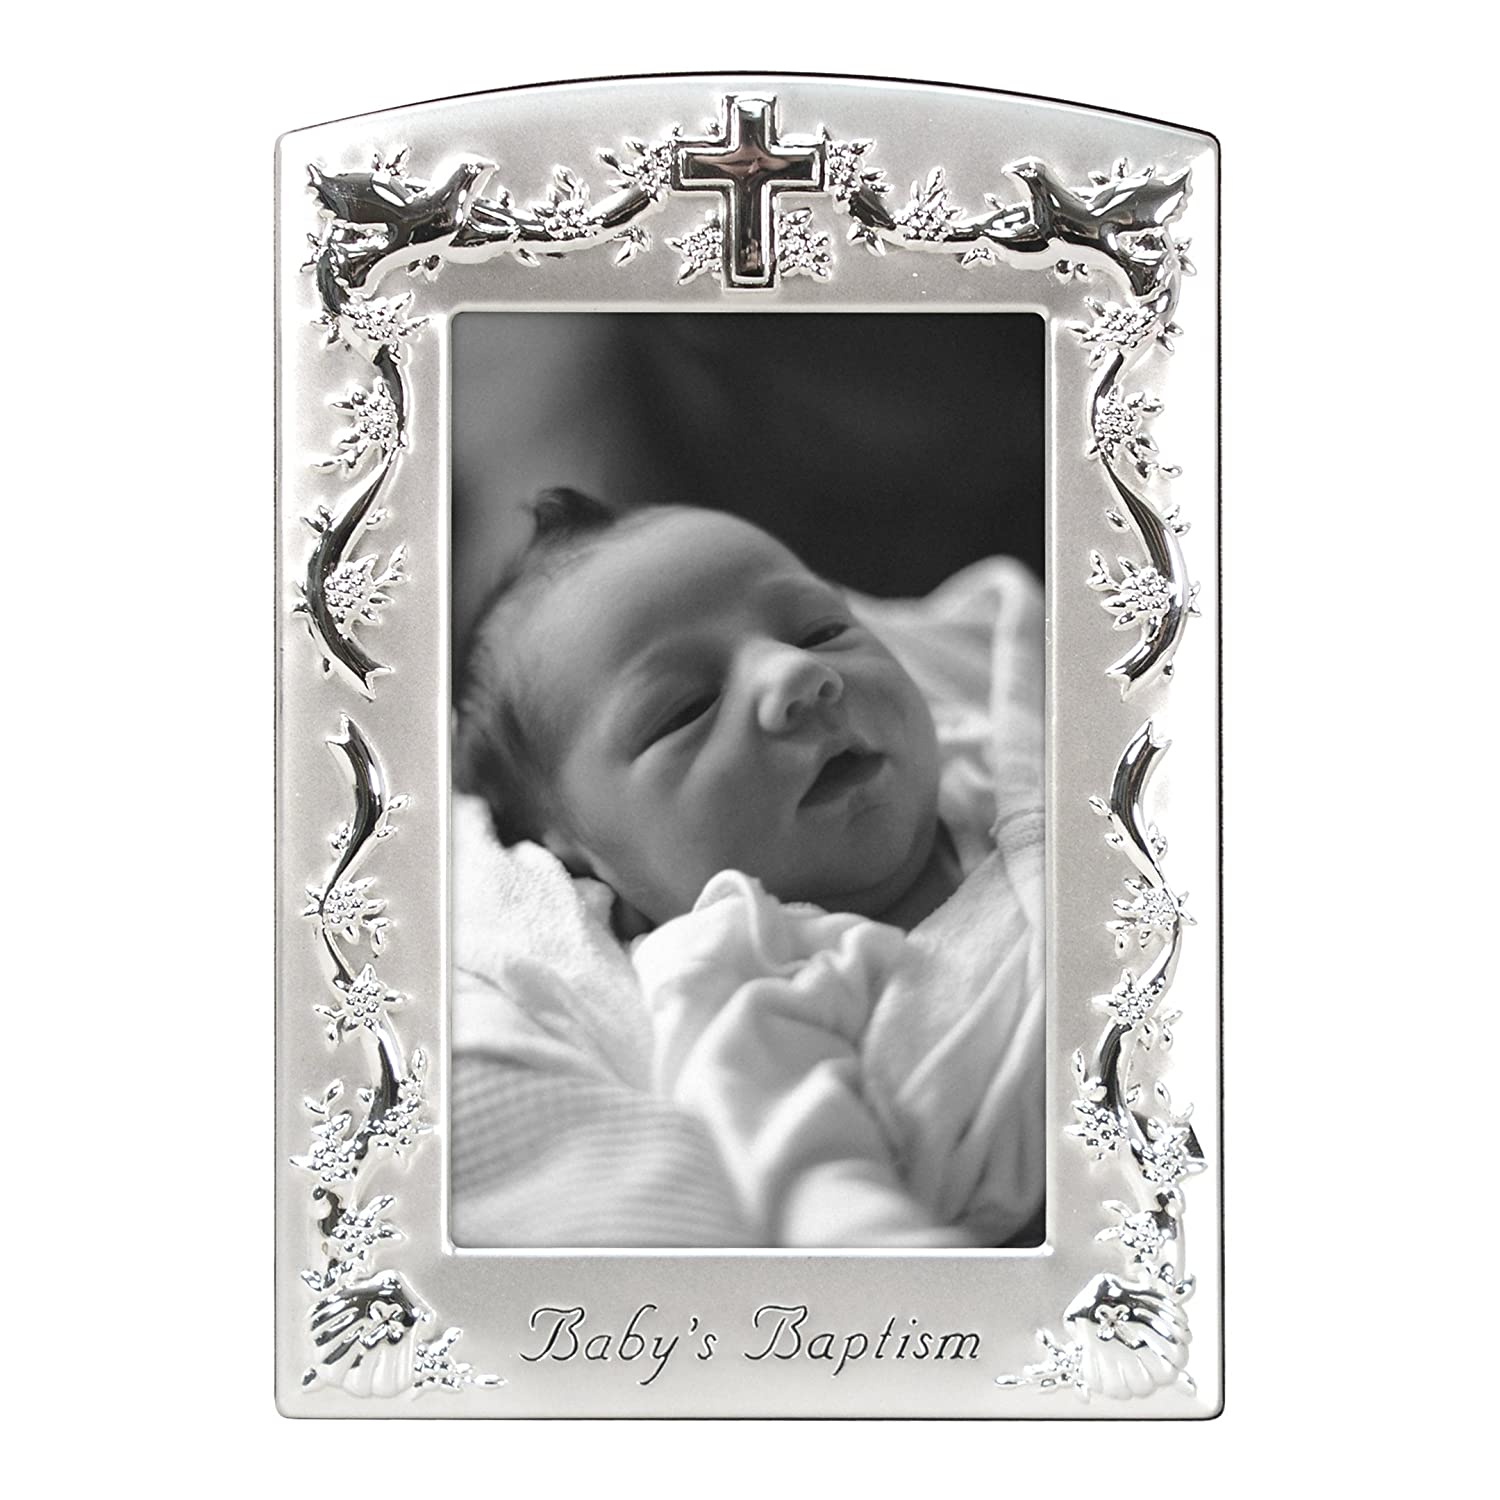 Malden Baby Baptism Two-Tone Picture Frame, Pewter 6901-46